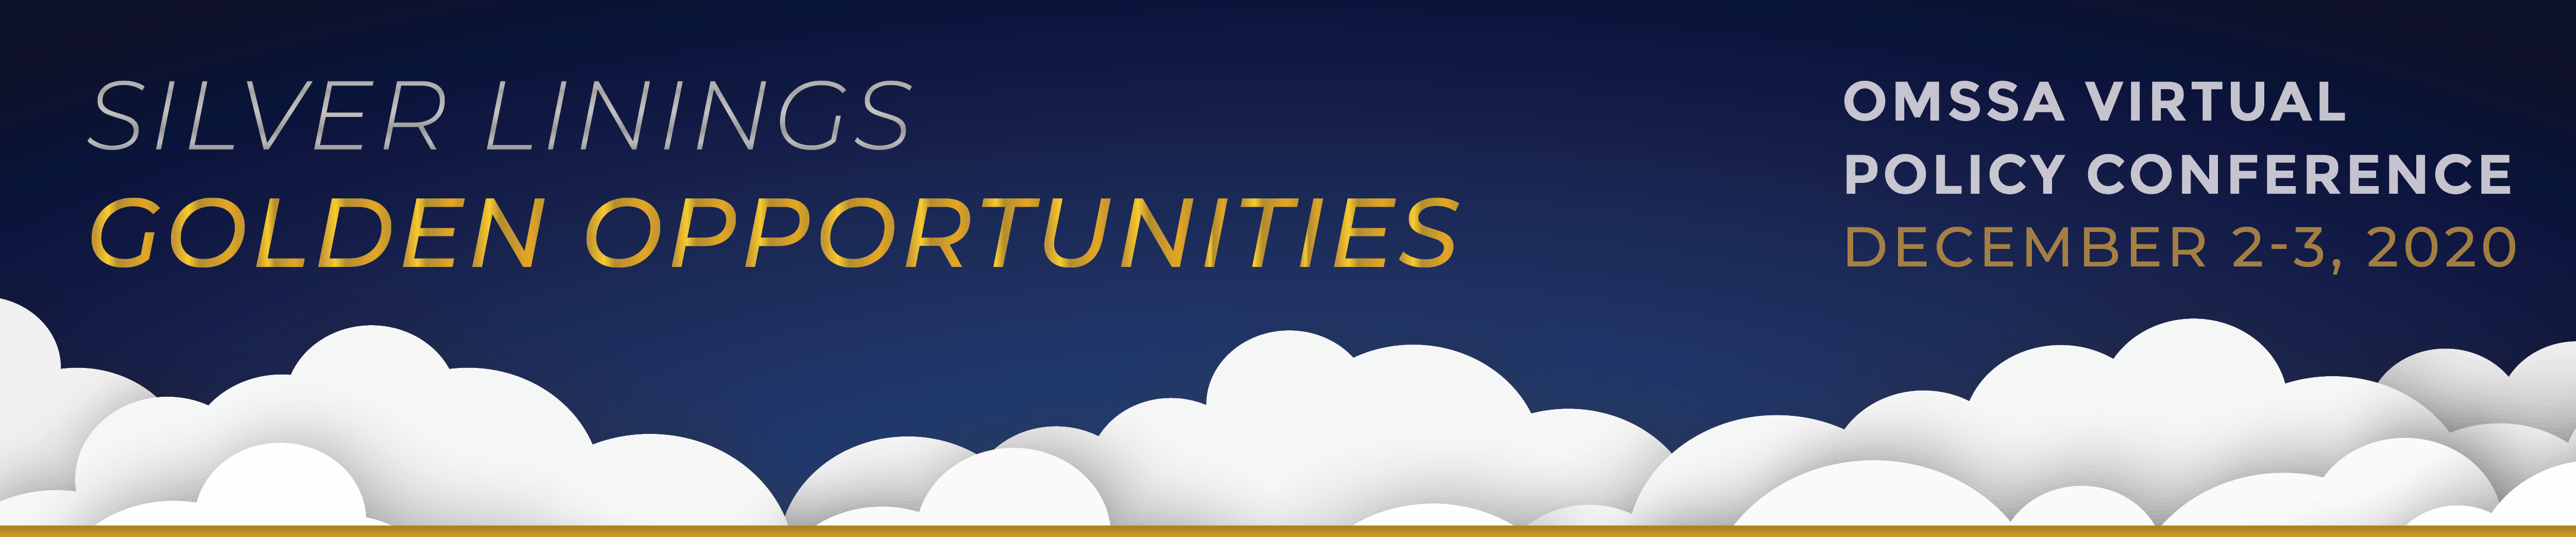 Silver Linings, Golden Opportunities: OMSSA Virtual Policy Conference, December 2-3, 2020